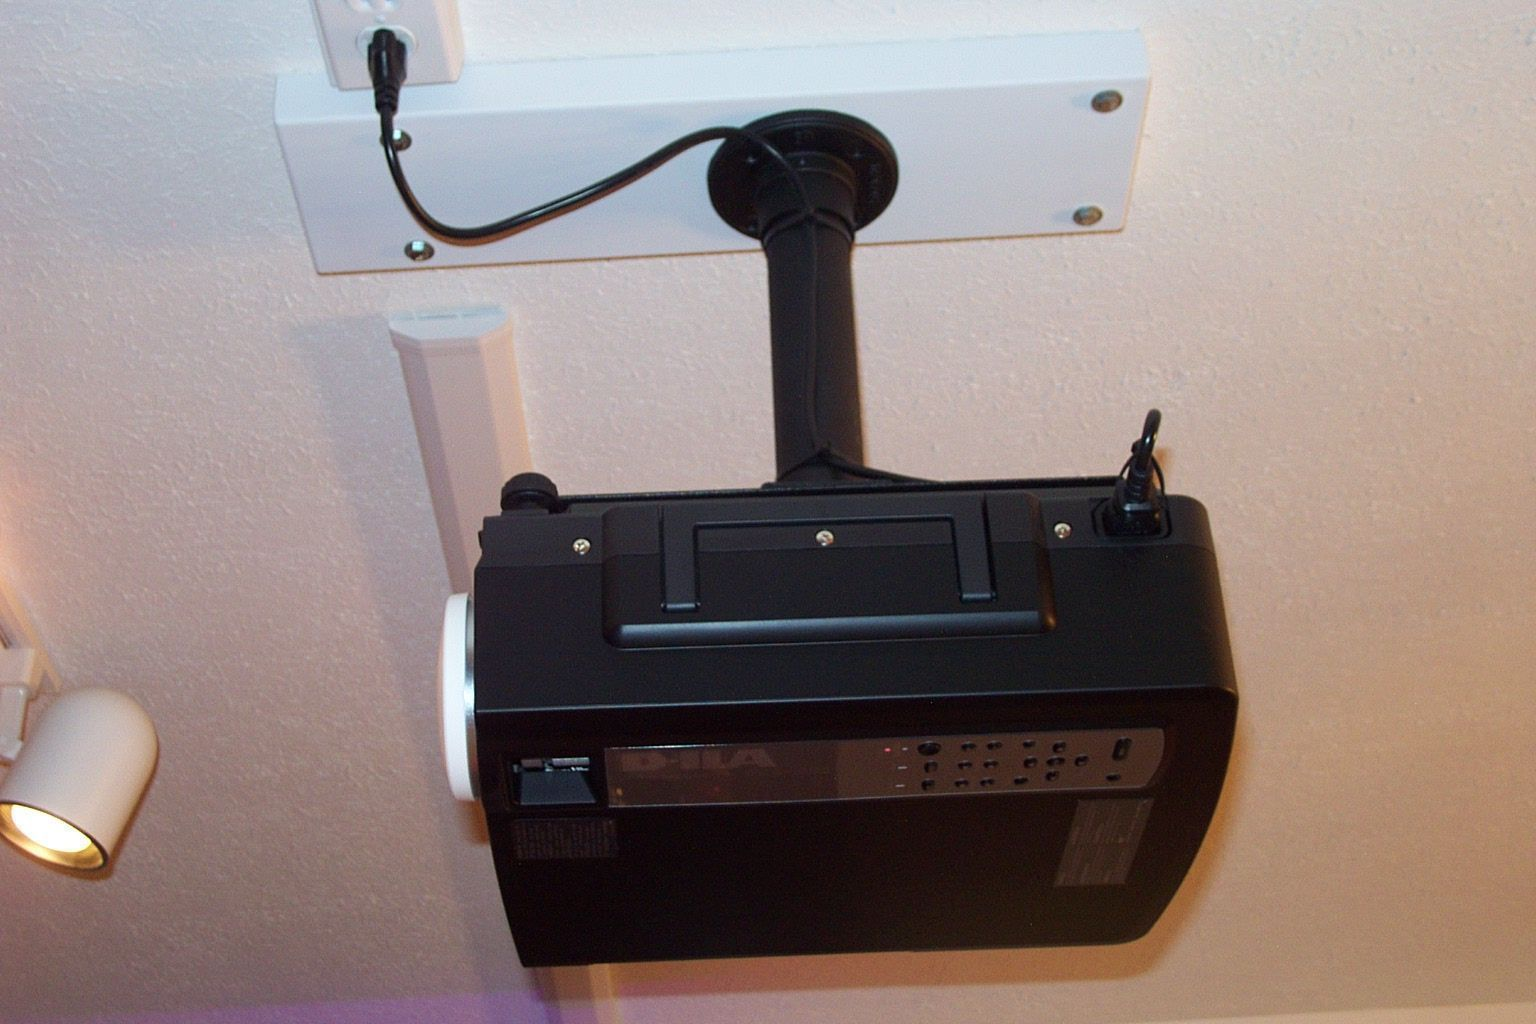 Snap Toggles To Mount Ceiling Projector Avs Forum Home Theater What Does Your Wiring Cabinet Look Like Discussions And Reviews